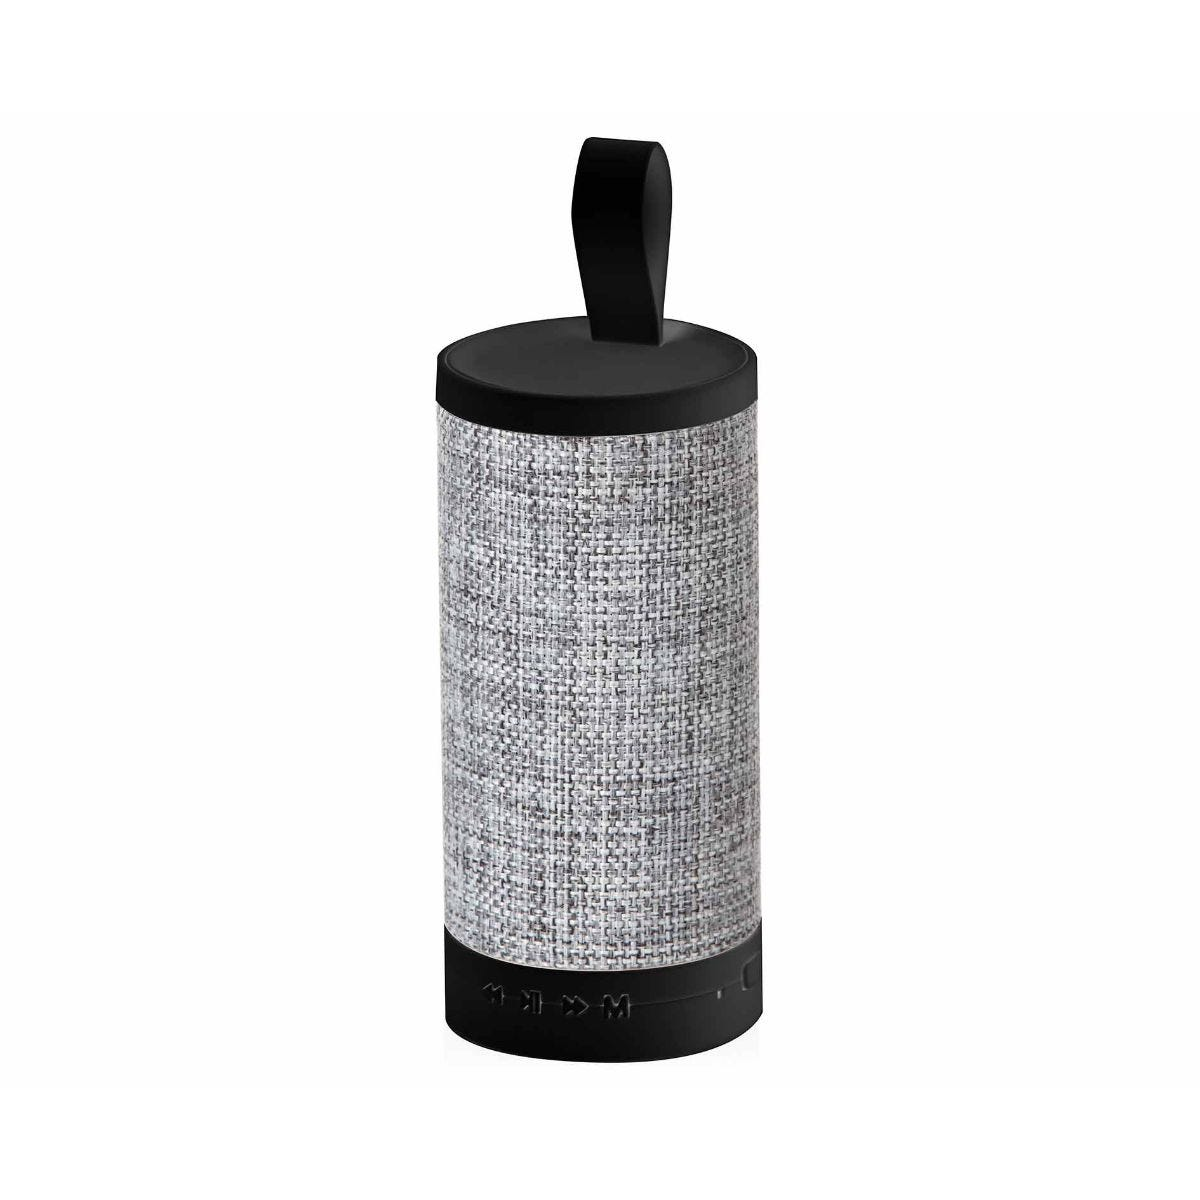 Image of Akai A58075G Fabric Bluetooth Speaker with Mic - Grey, Grey